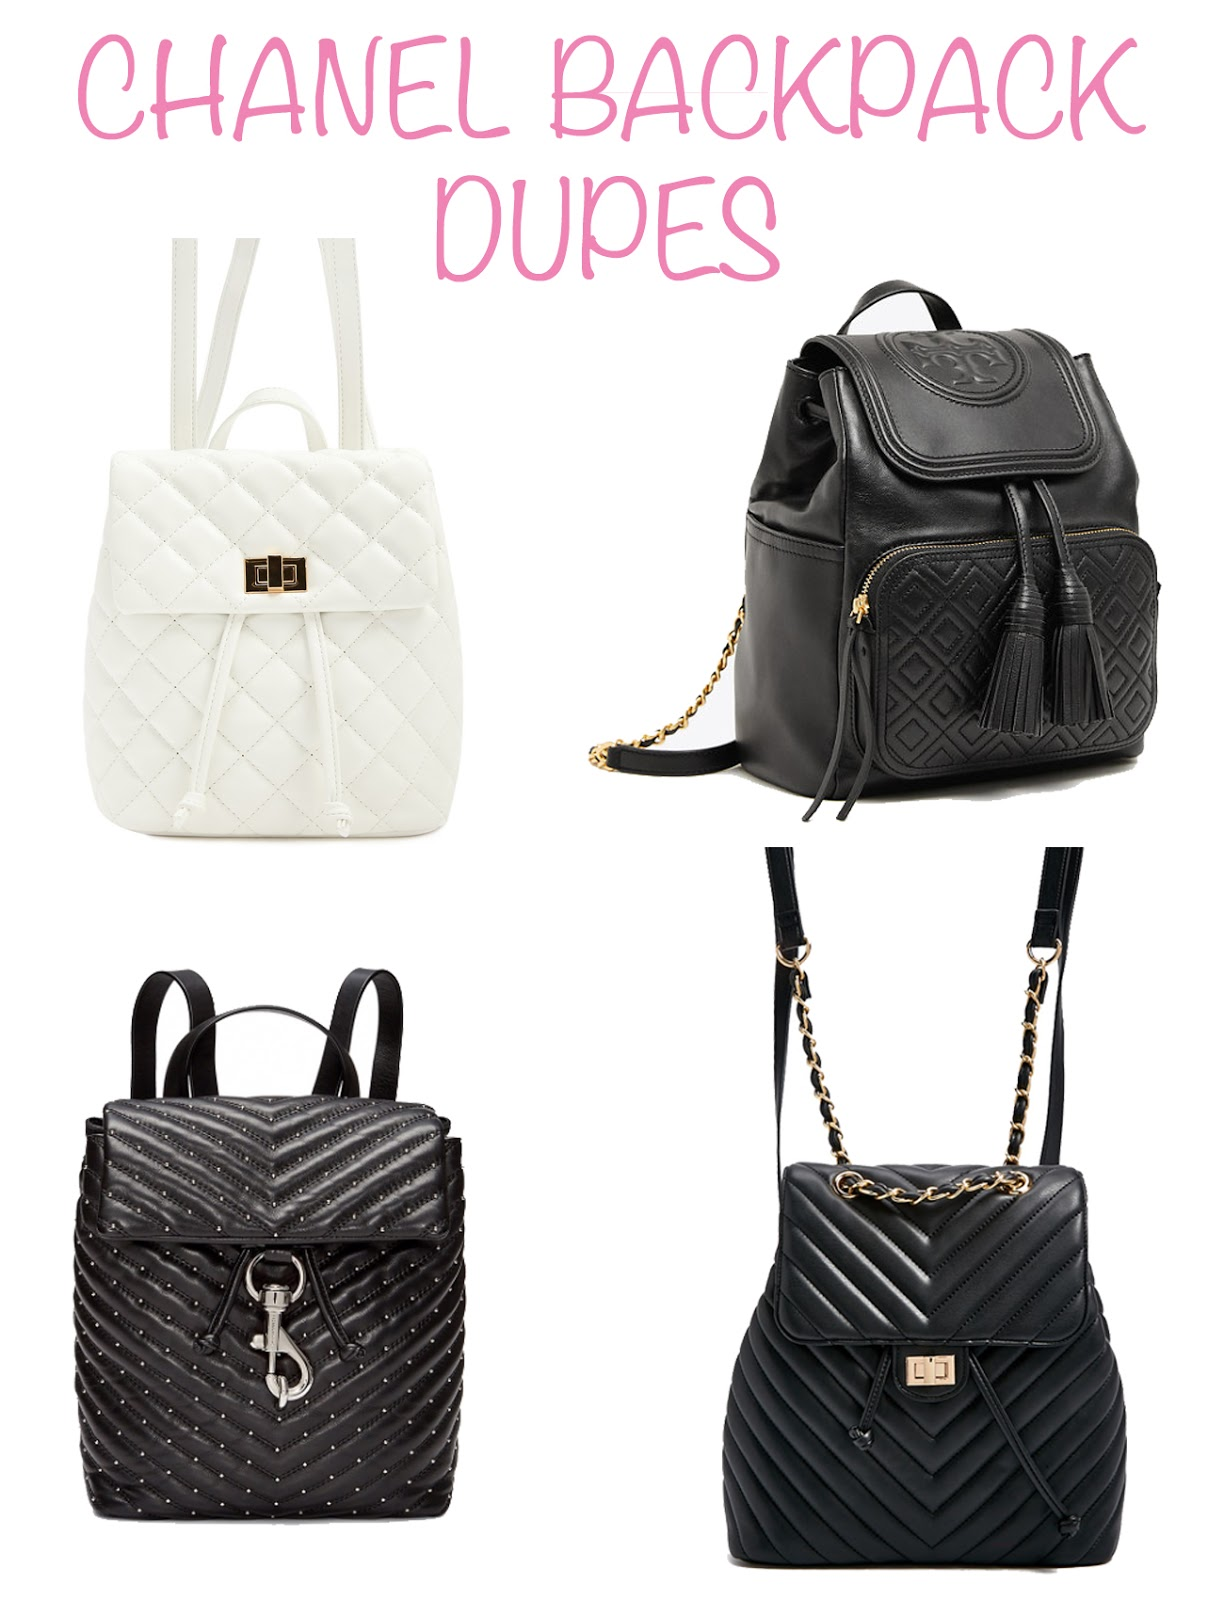 5ecec53893cb Fashion Files: Chanel Backpack Dupes - Royally Pink